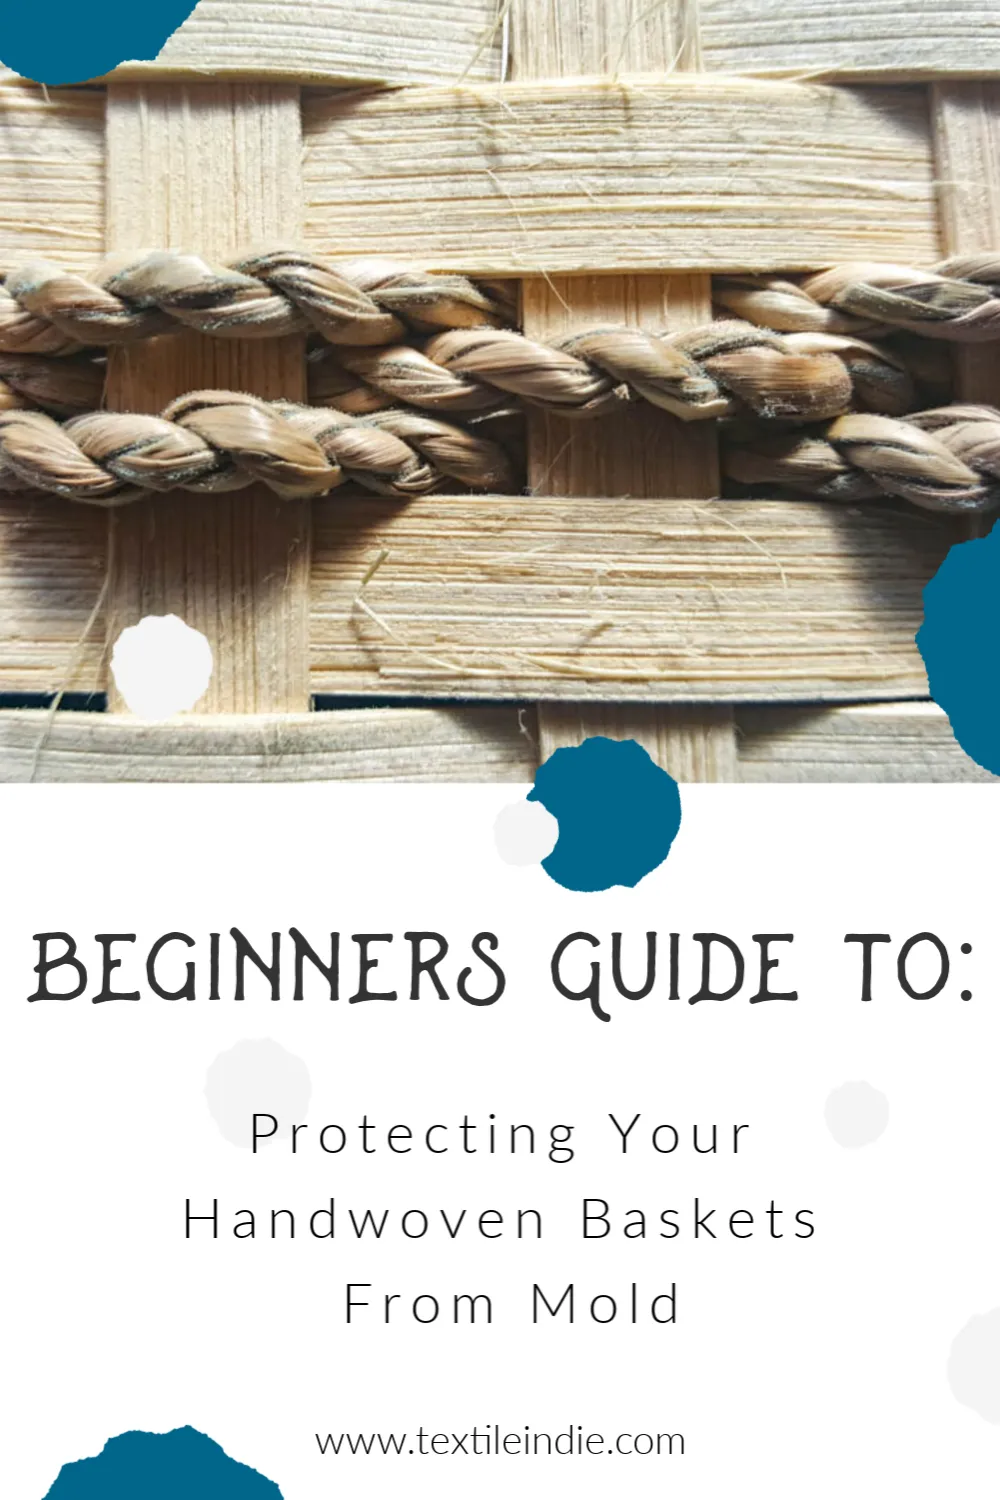 Beginners Guide to Protecting Your Baskets From Mold www.textileindie.com #basketmaking #basketweaving #beginnersguidetobasketweaving #textileindie Mold, light, water, dirt, staining…..All potential problems that can attack your beautifully woven baskets if you don't plan ahead.